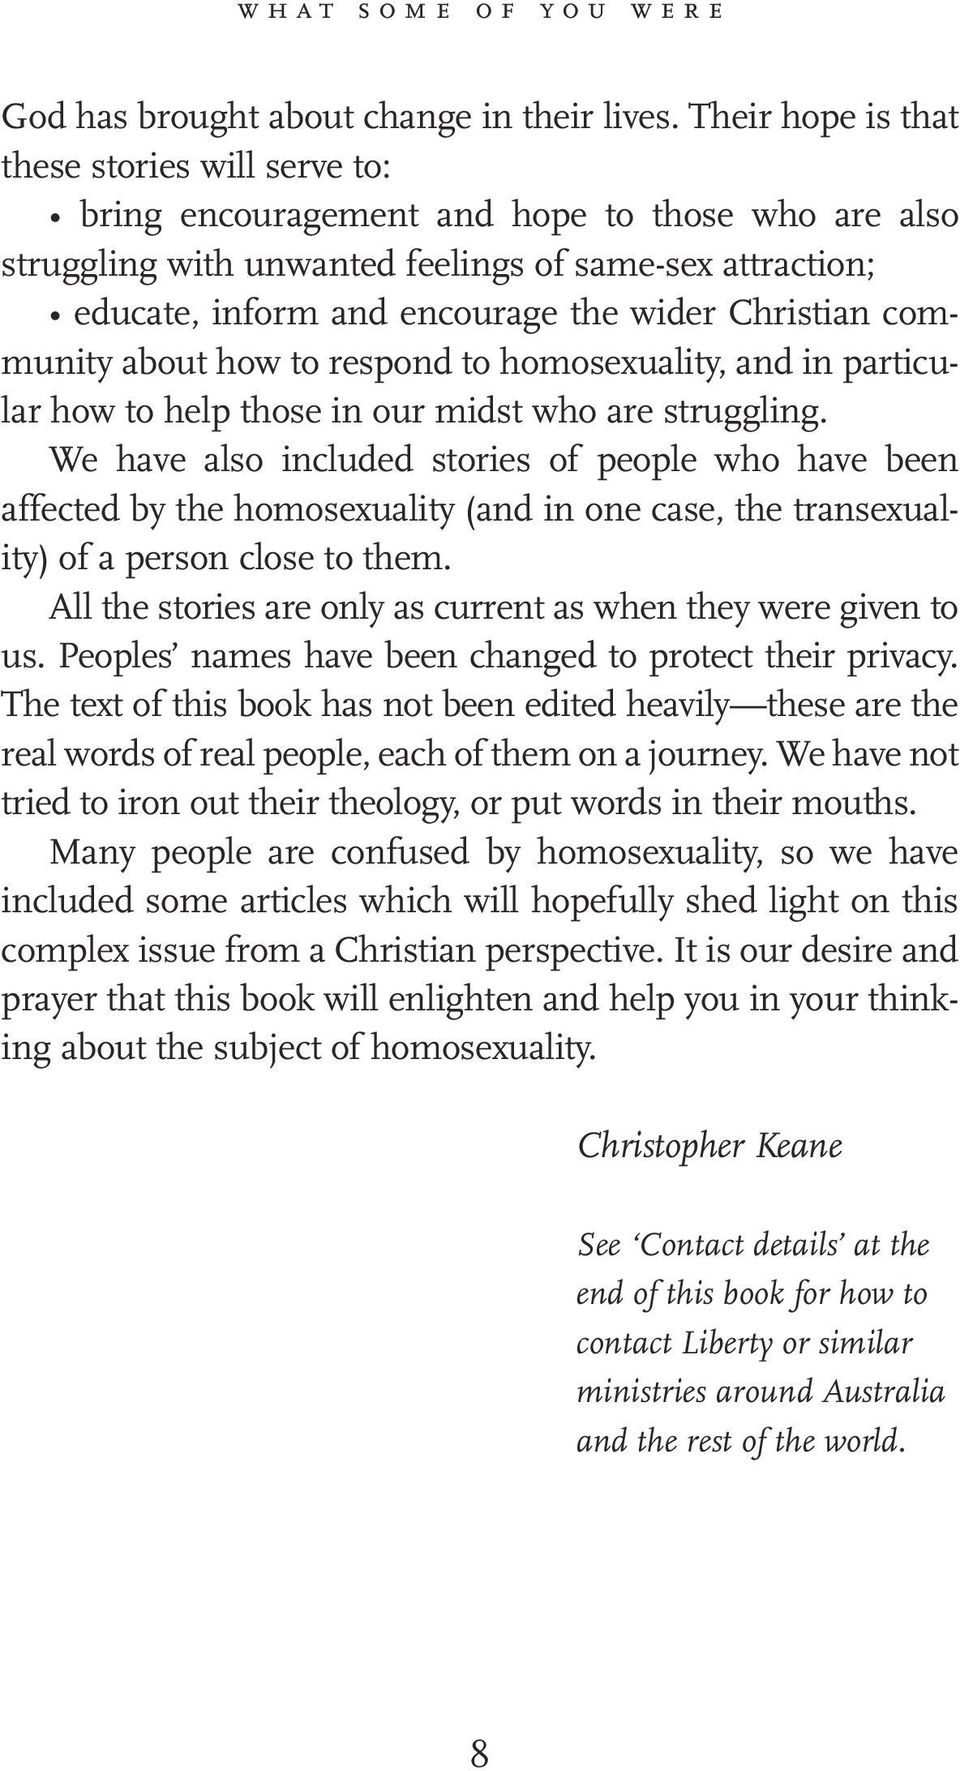 Christian community about how to respond to homosexuality, and in particular how to help those in our midst who are struggling.